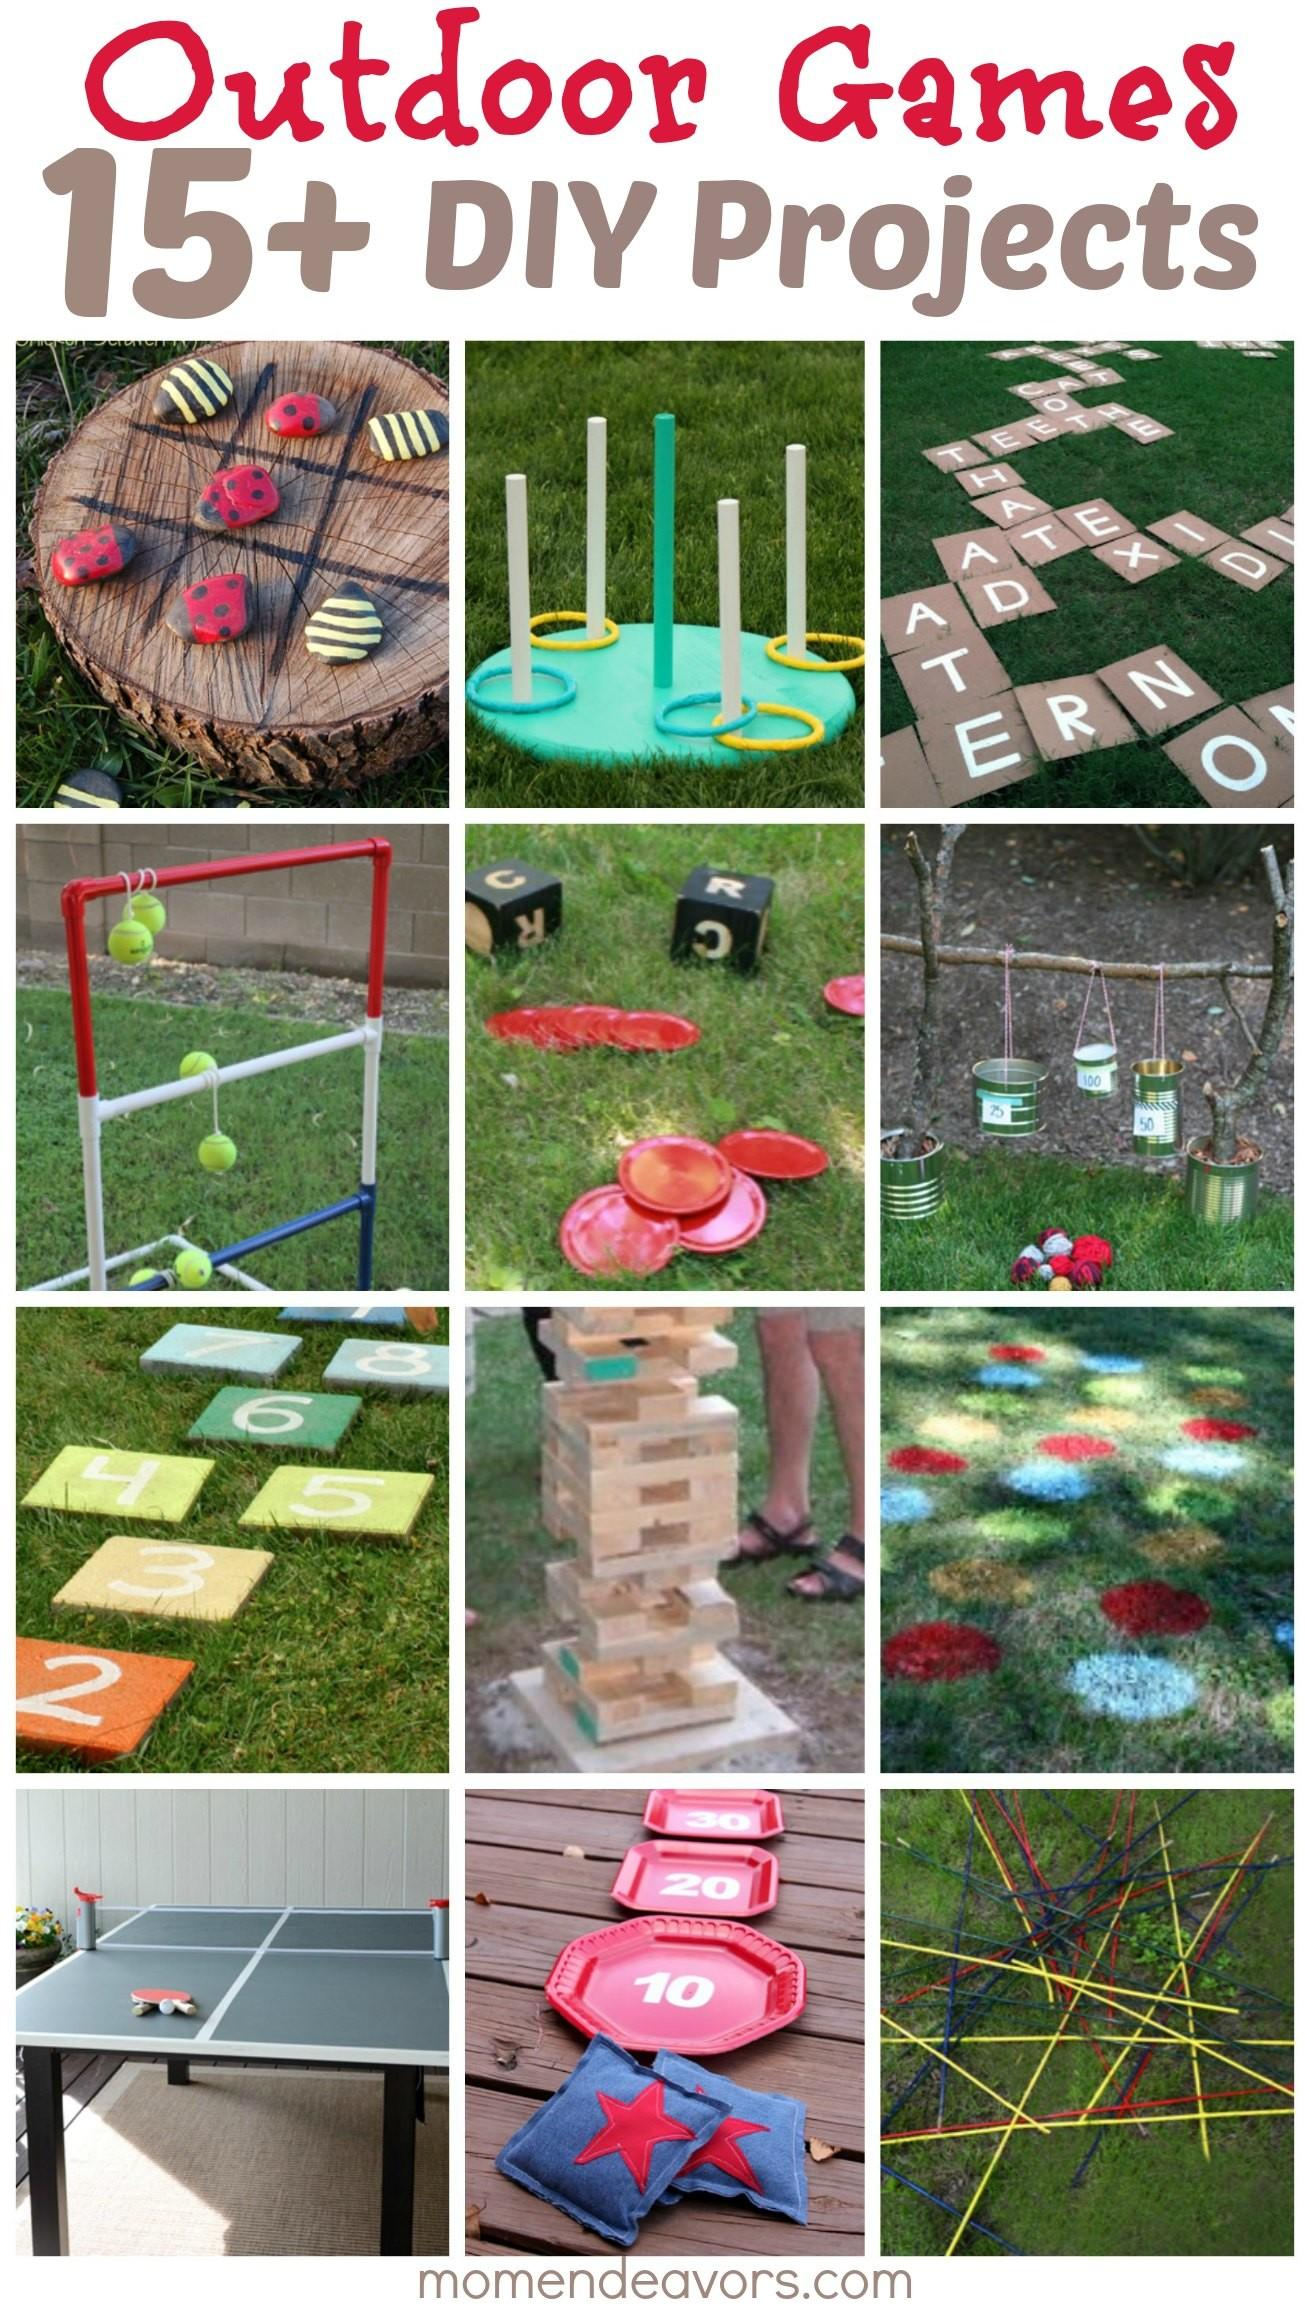 Diy Outdoor Games Awesome Project Ideas Backyard